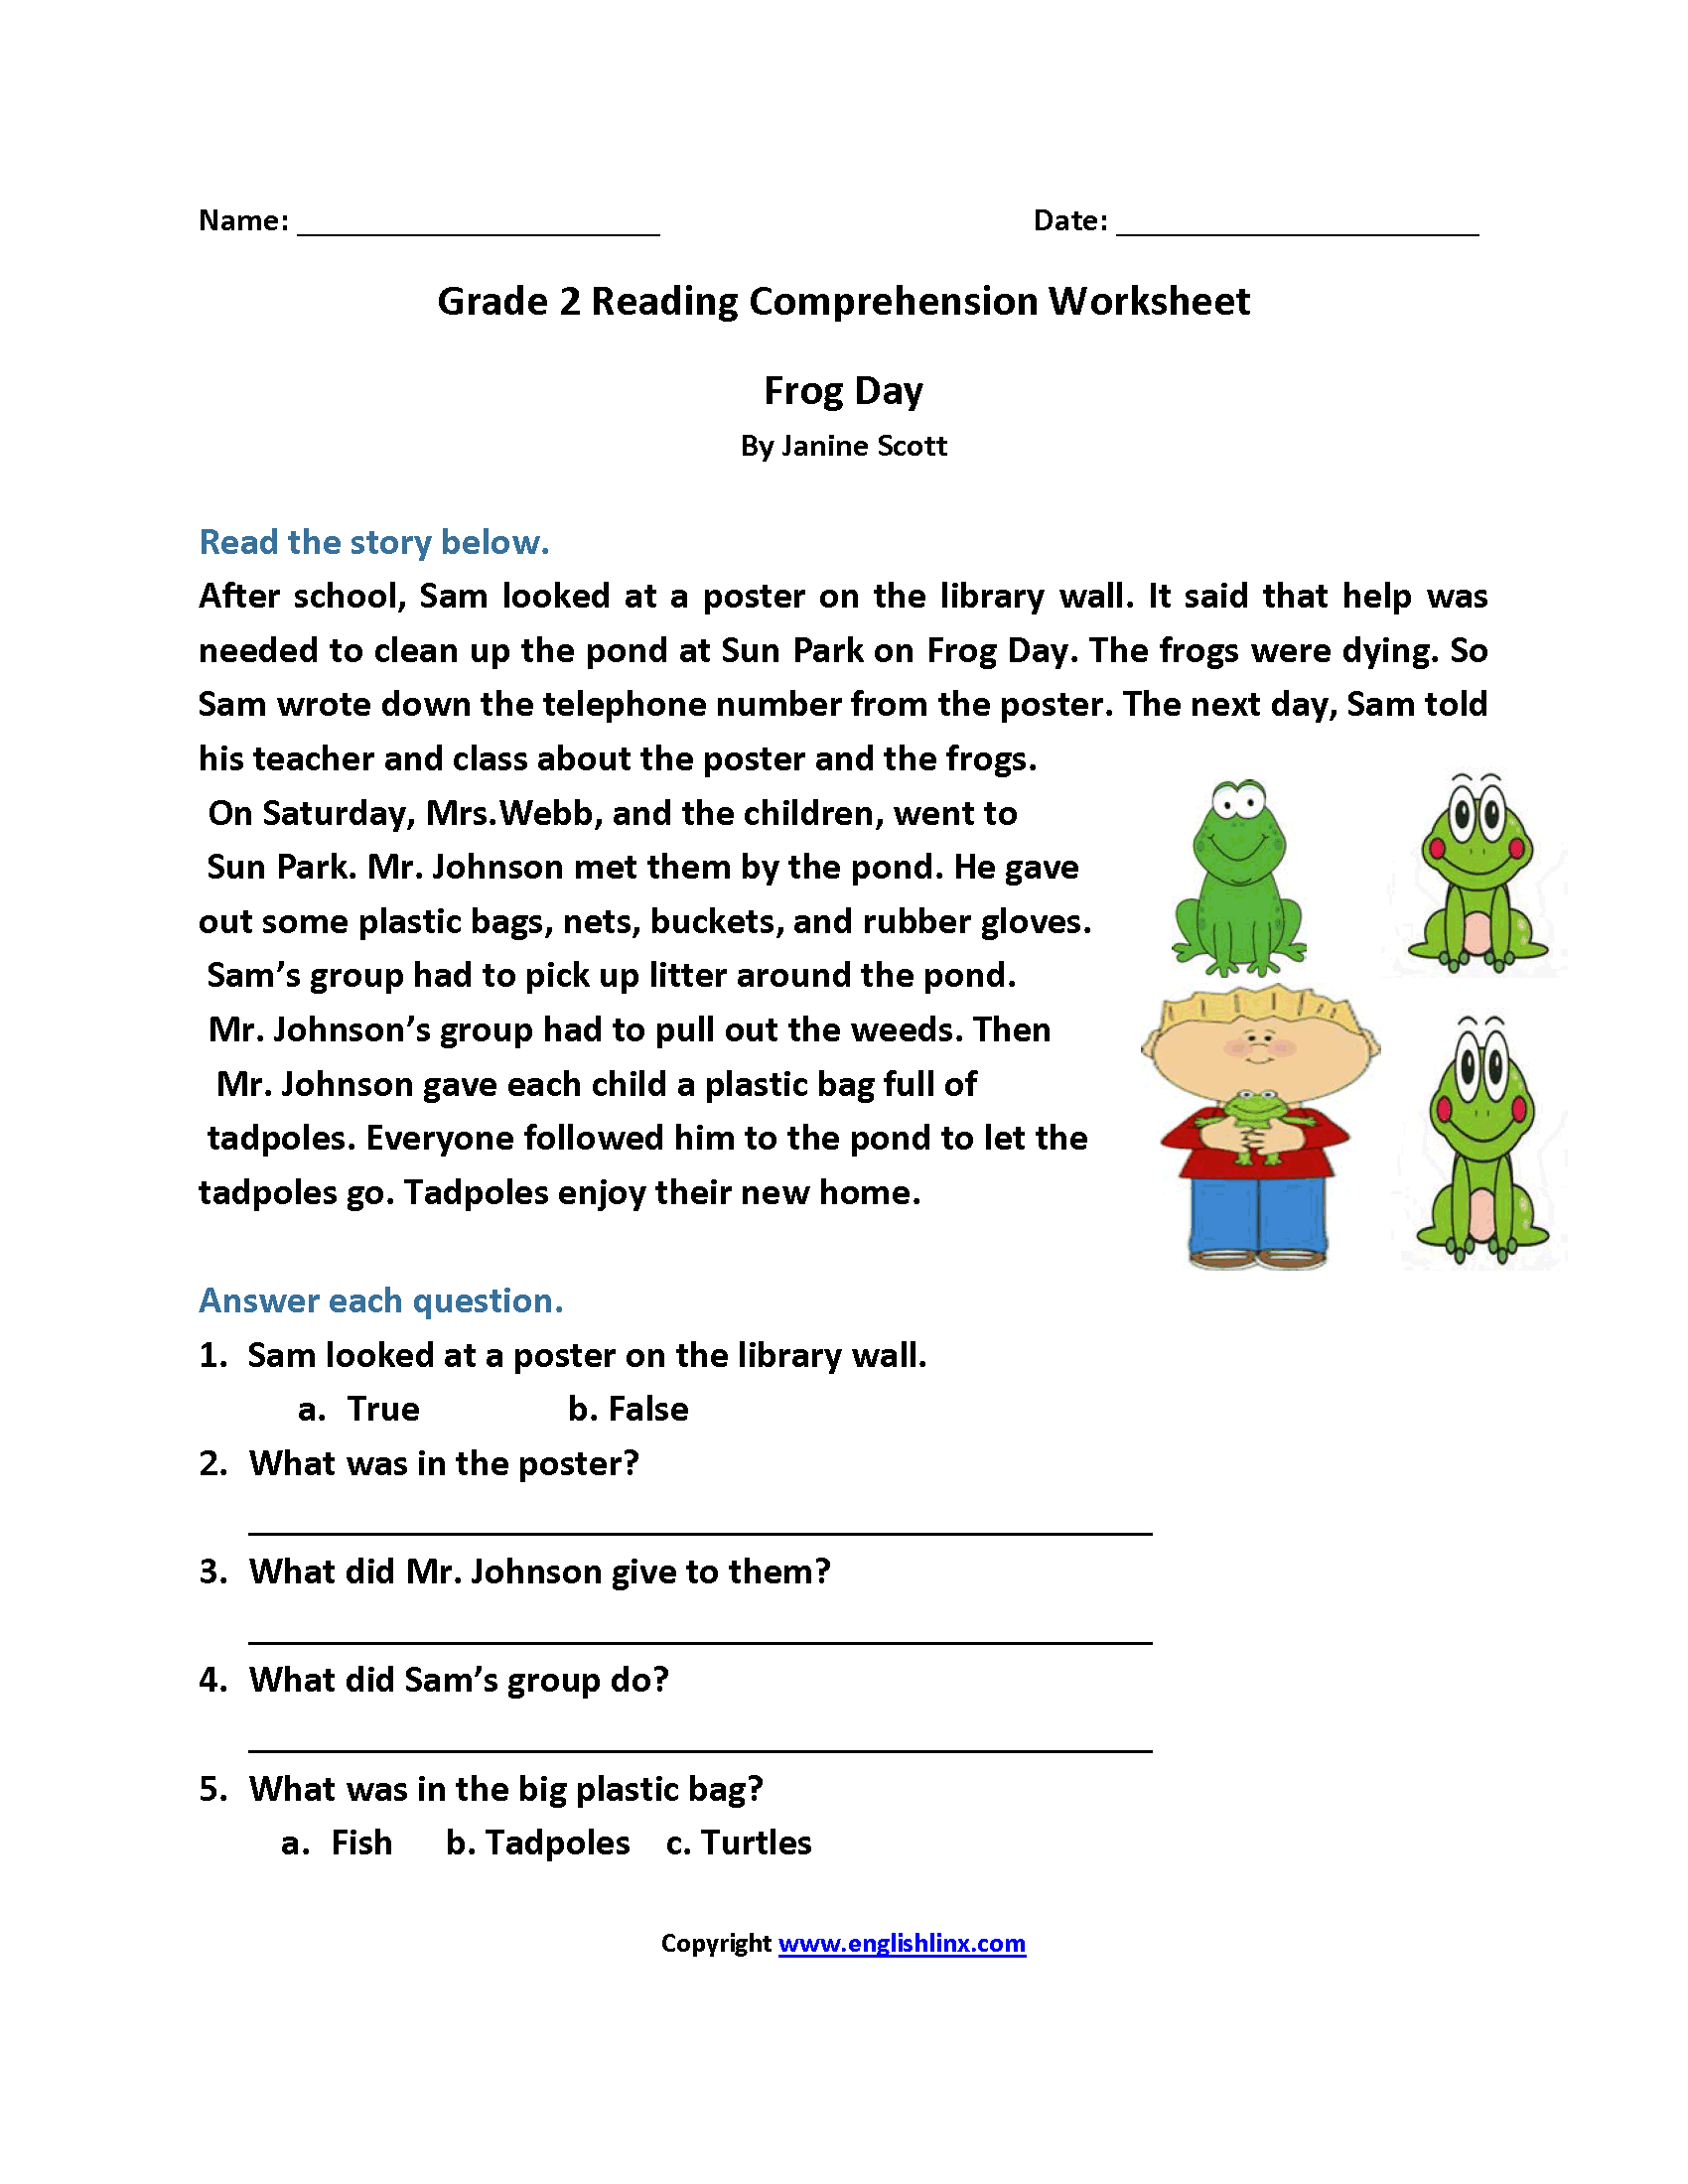 Reading Comprehension Worksheets 2nd Grade